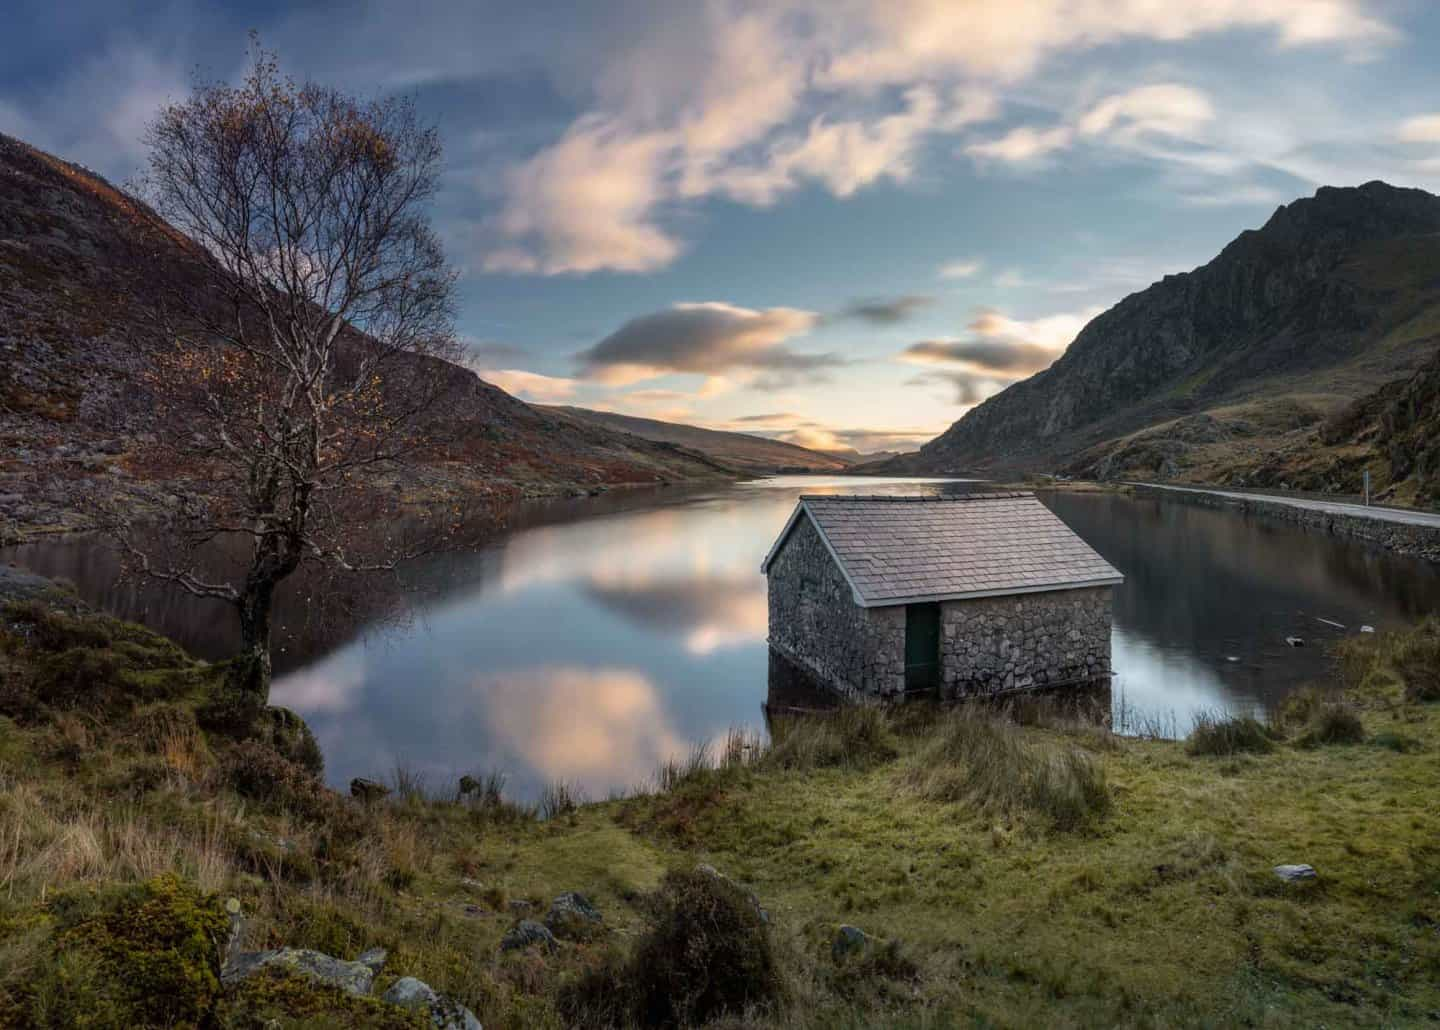 Sunrise at Ogwen cottage is among the most popular Snowdonia photography locations.